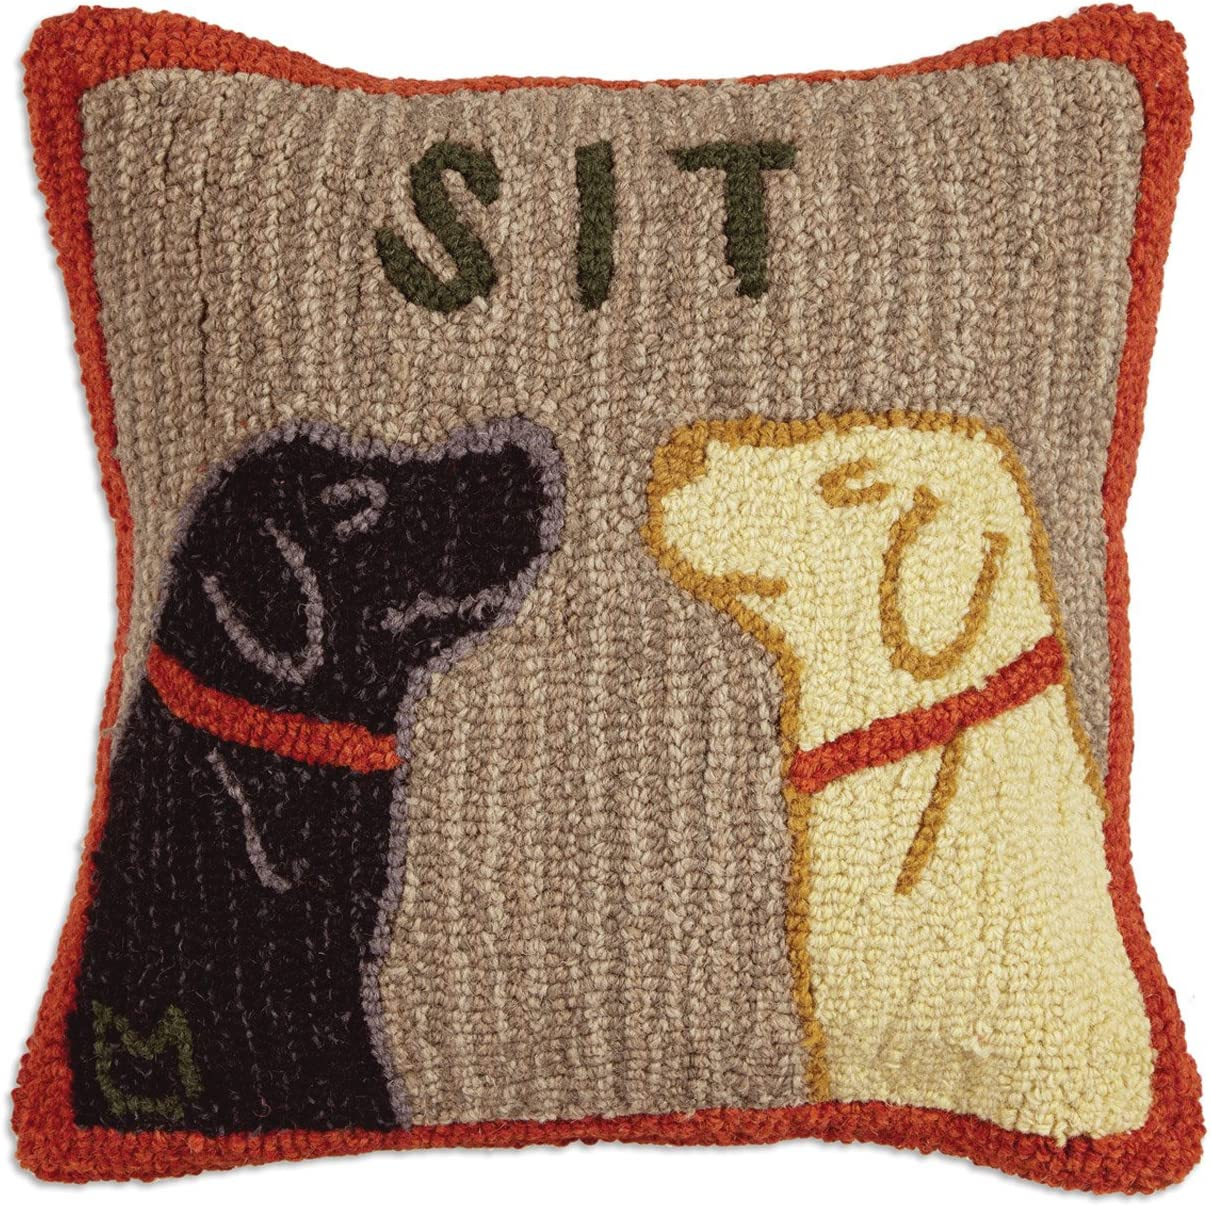 Chandler 4 Corners Artist-Designed Two Dogs Sitting Hand-Hooked Wool Decorative Throw Pillow 18 x 18